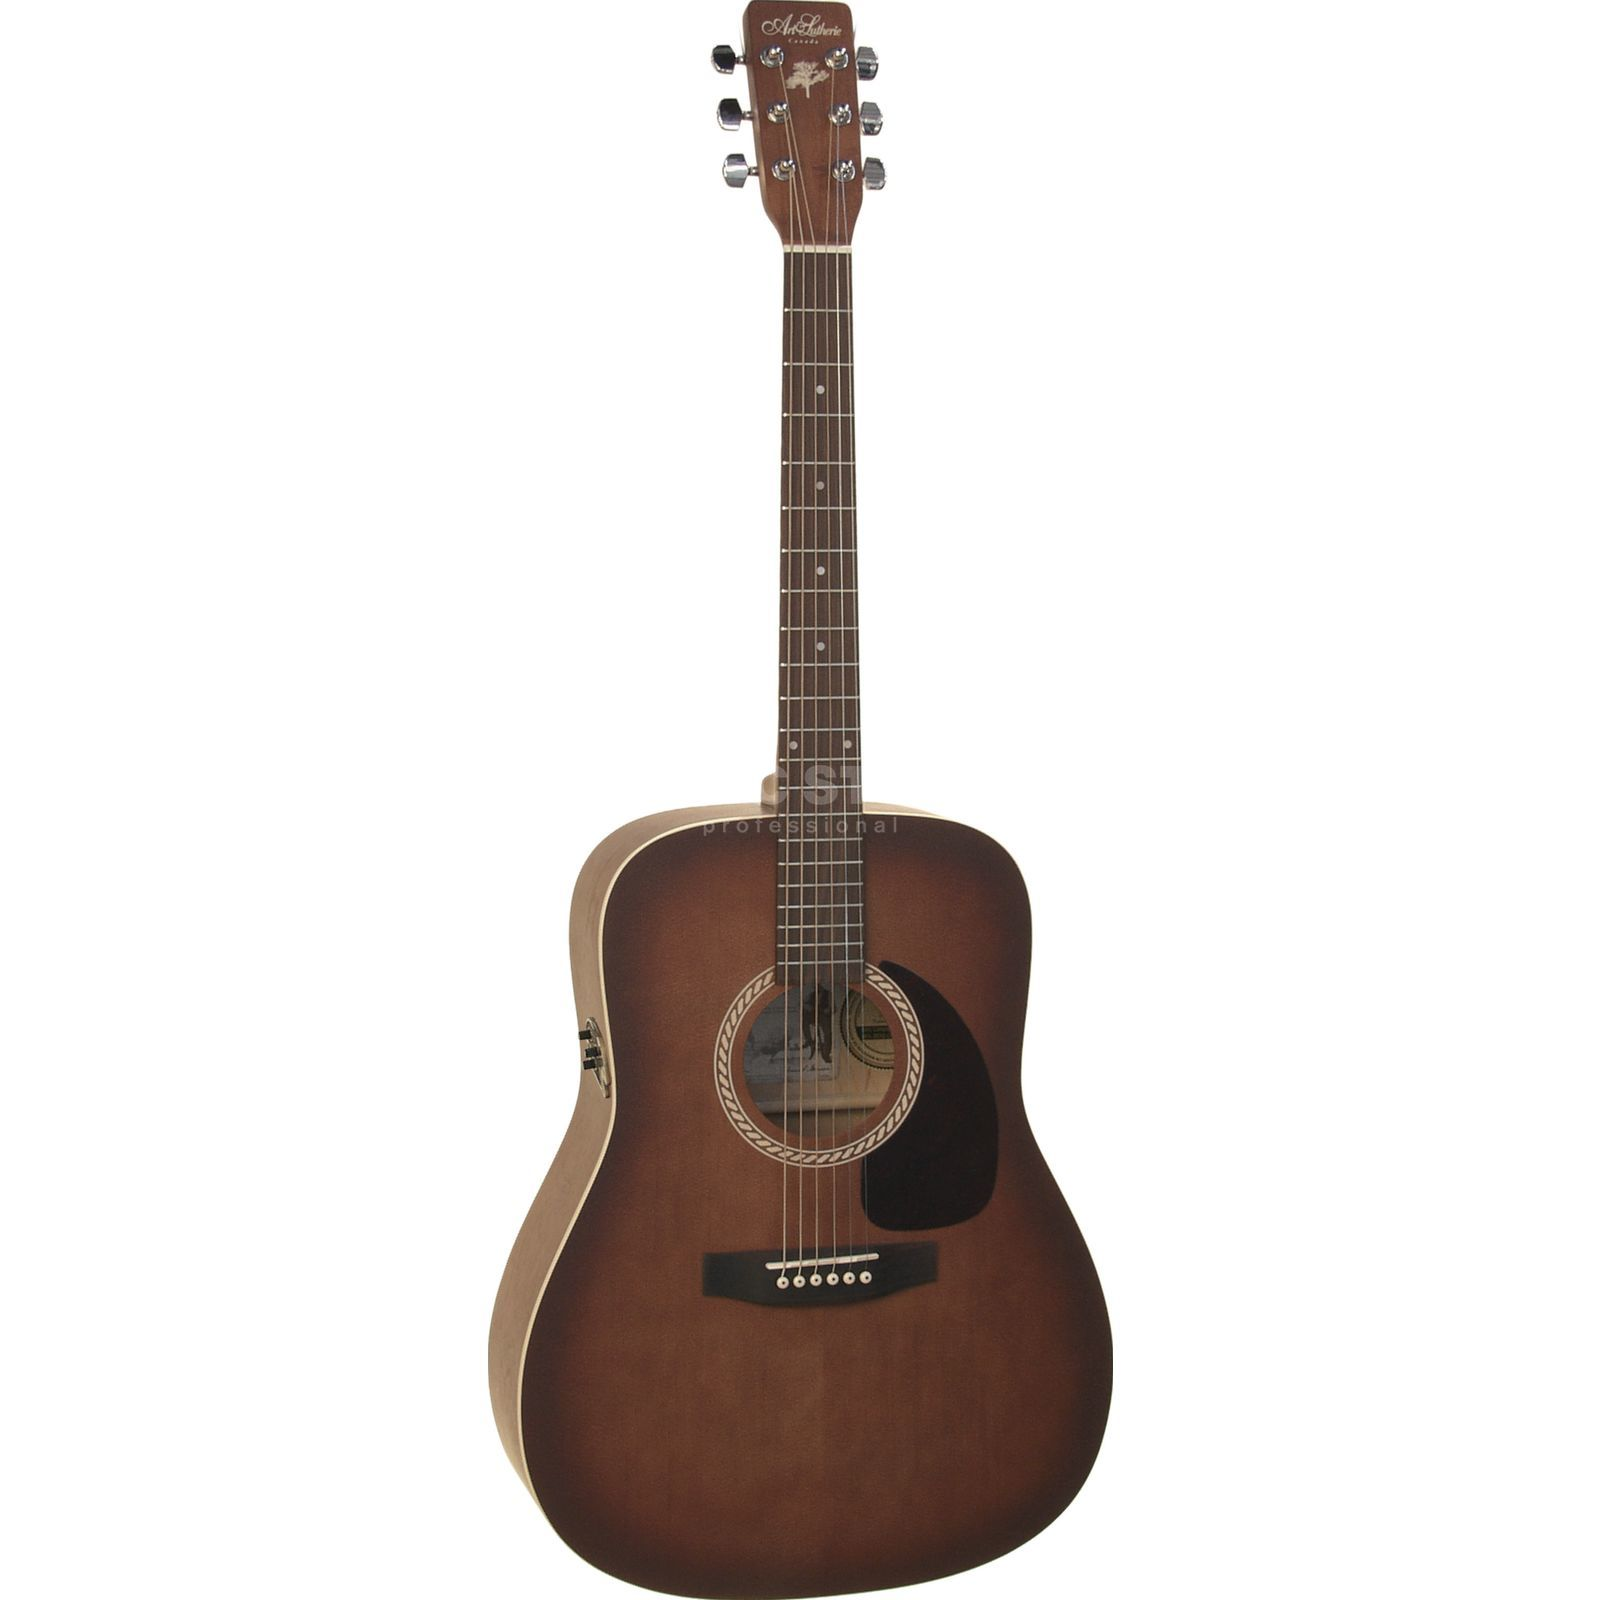 Art Lutherie Cedar Q1 Antique Burst Dreadnought mit Quantum I Produktbild